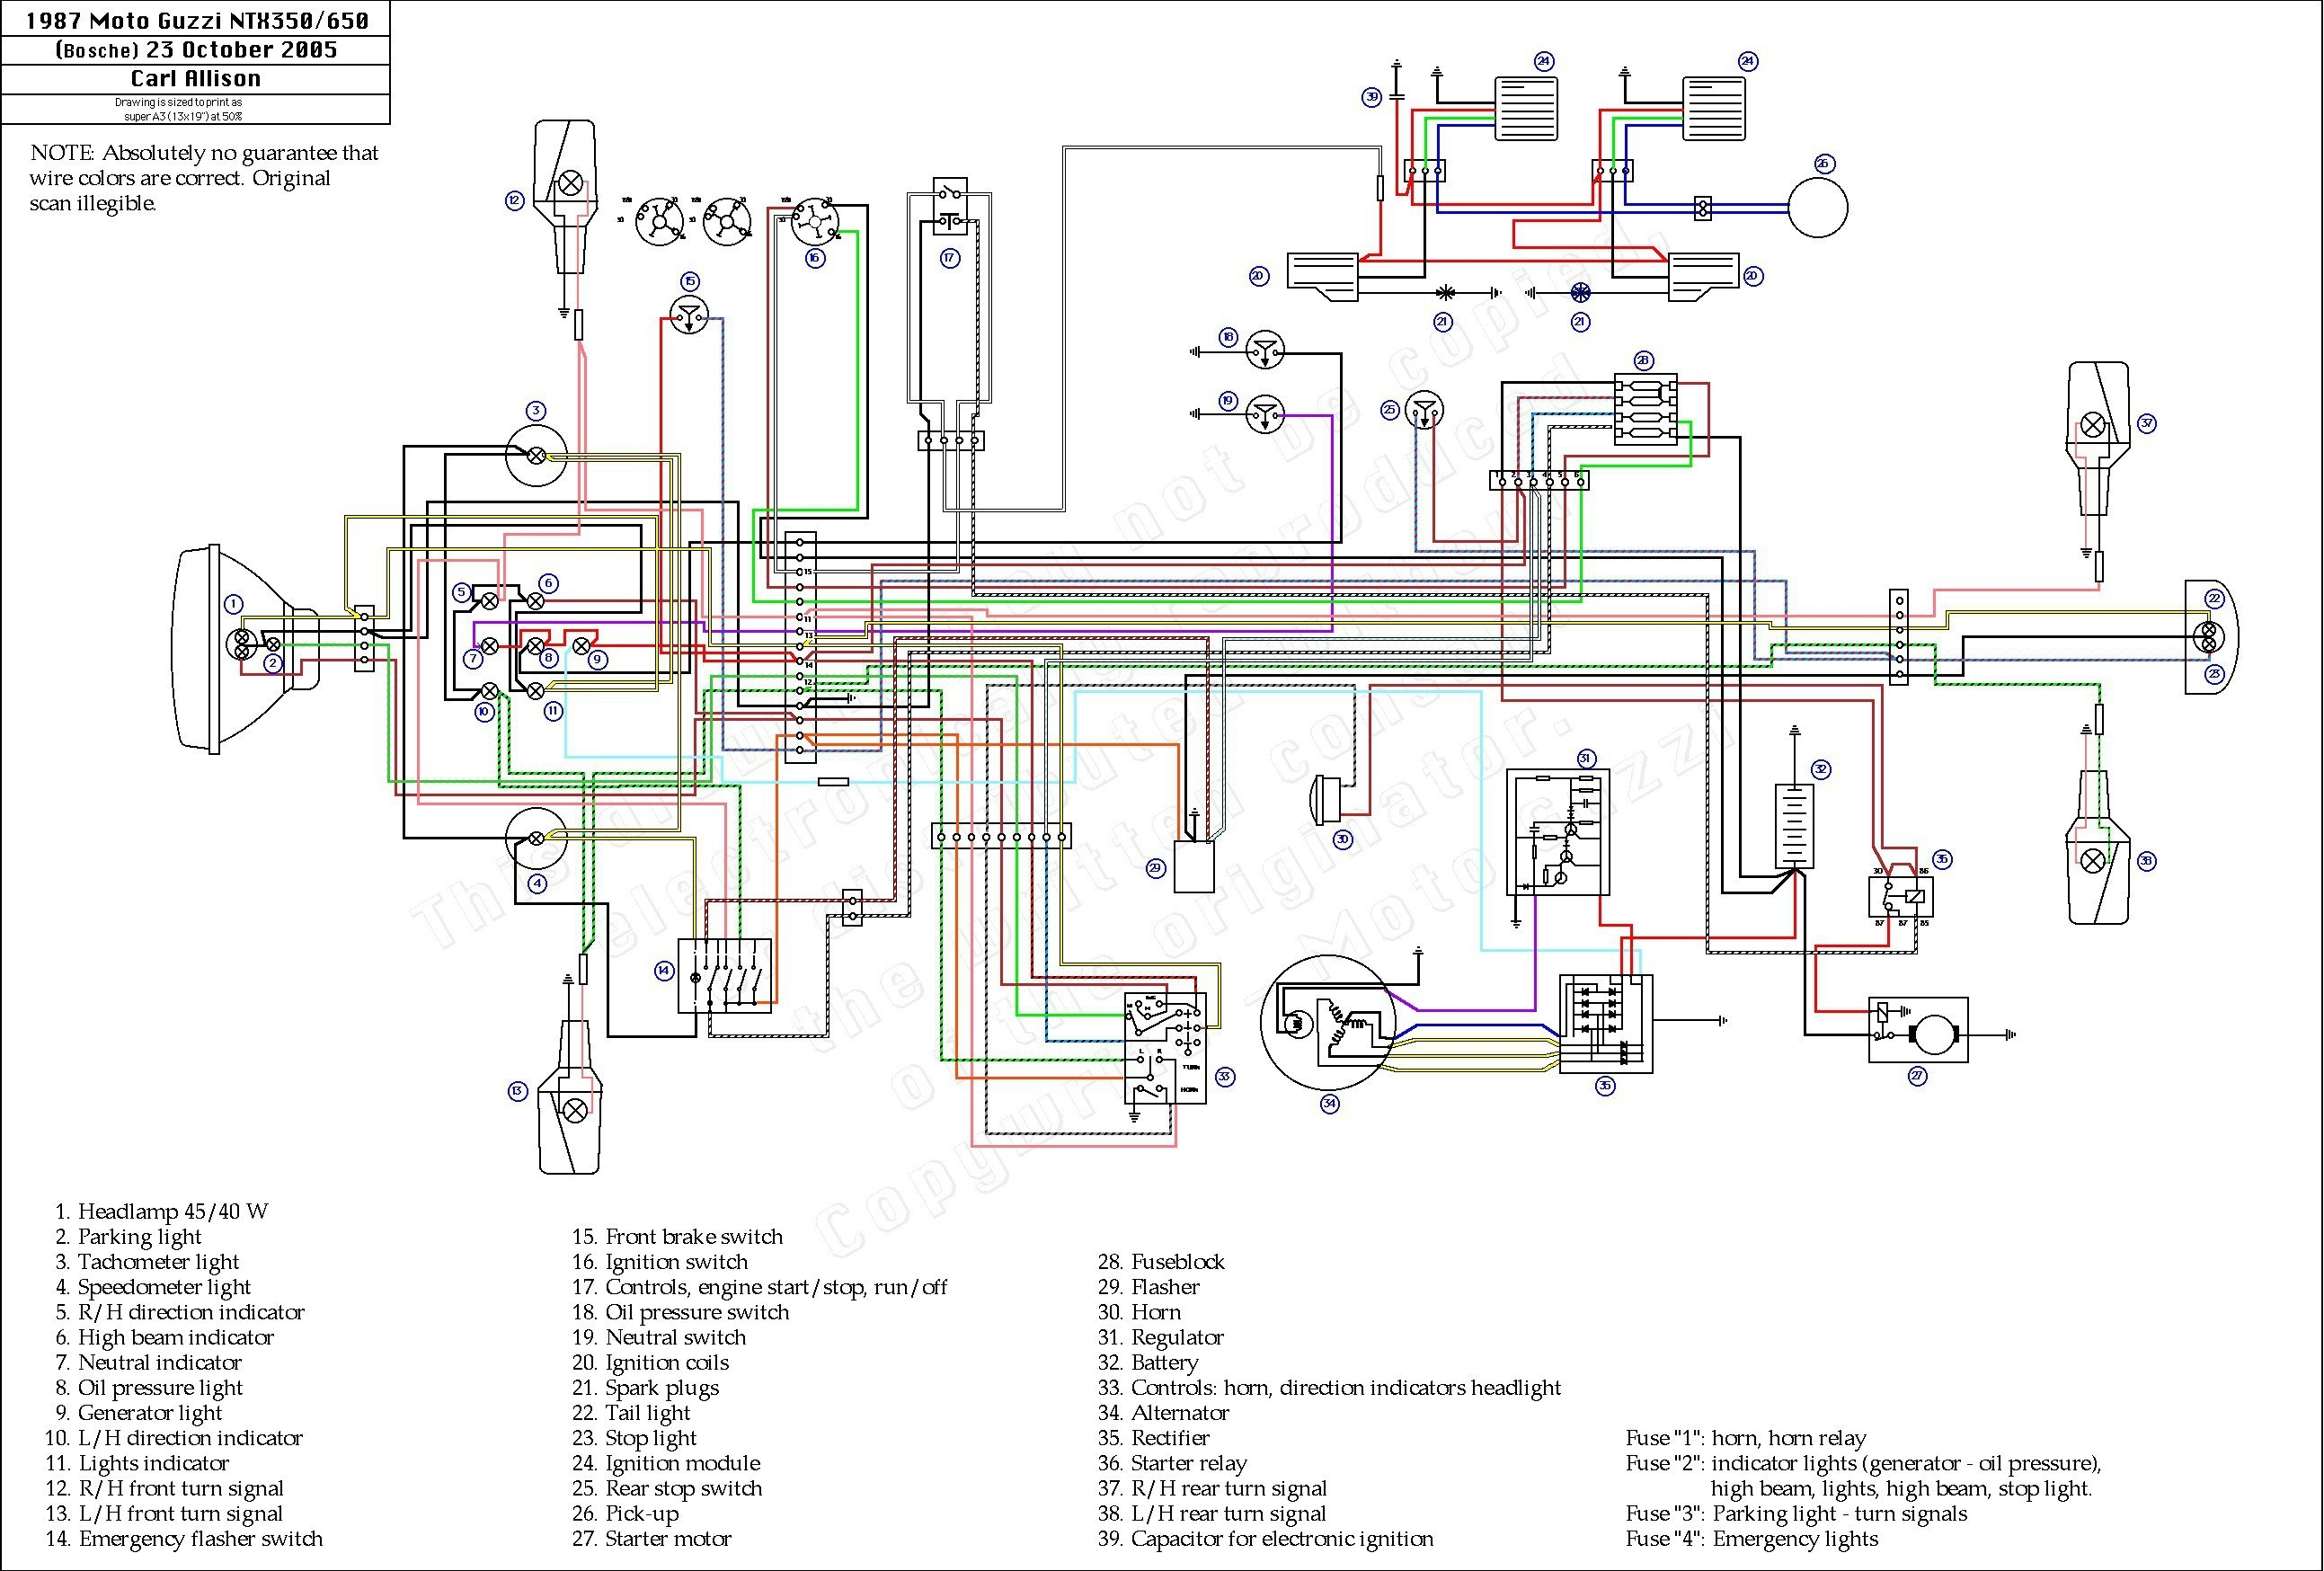 tao 125 atv wiring diagram trusted wiring diagrams u2022 rh sivamuni com  125cc taotao atv wiring diagram